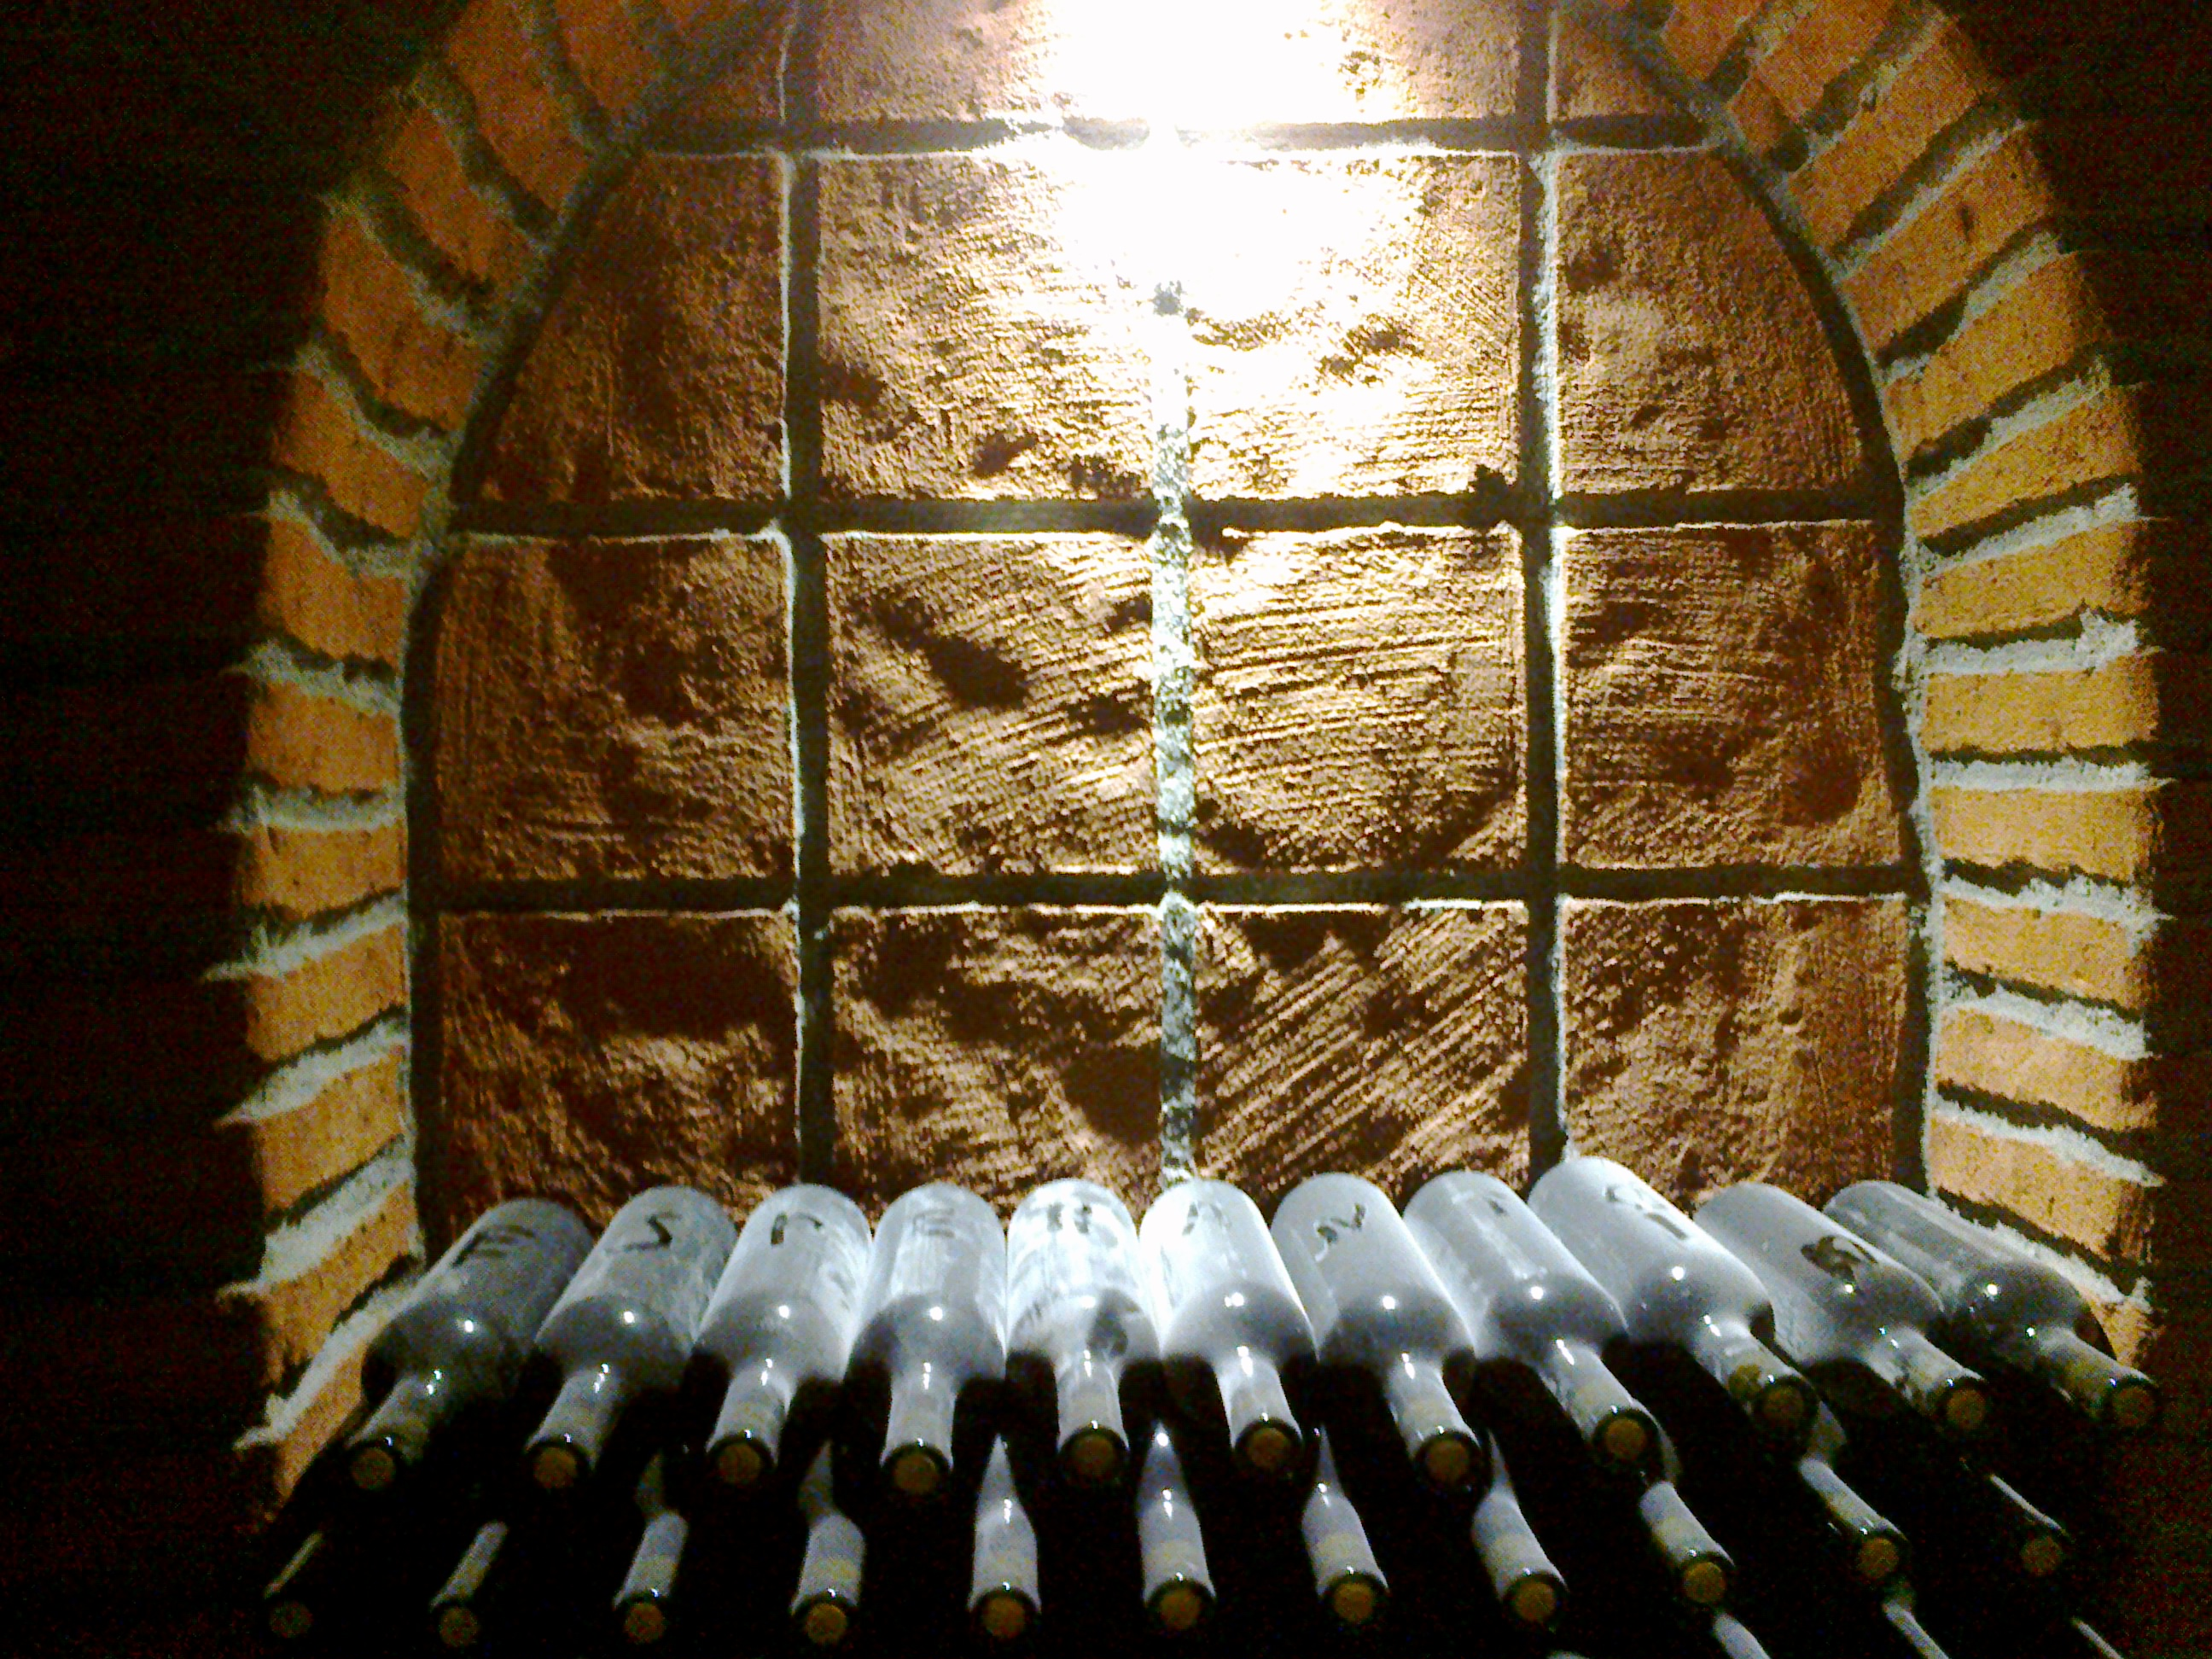 Winery Khareba in Kakheti